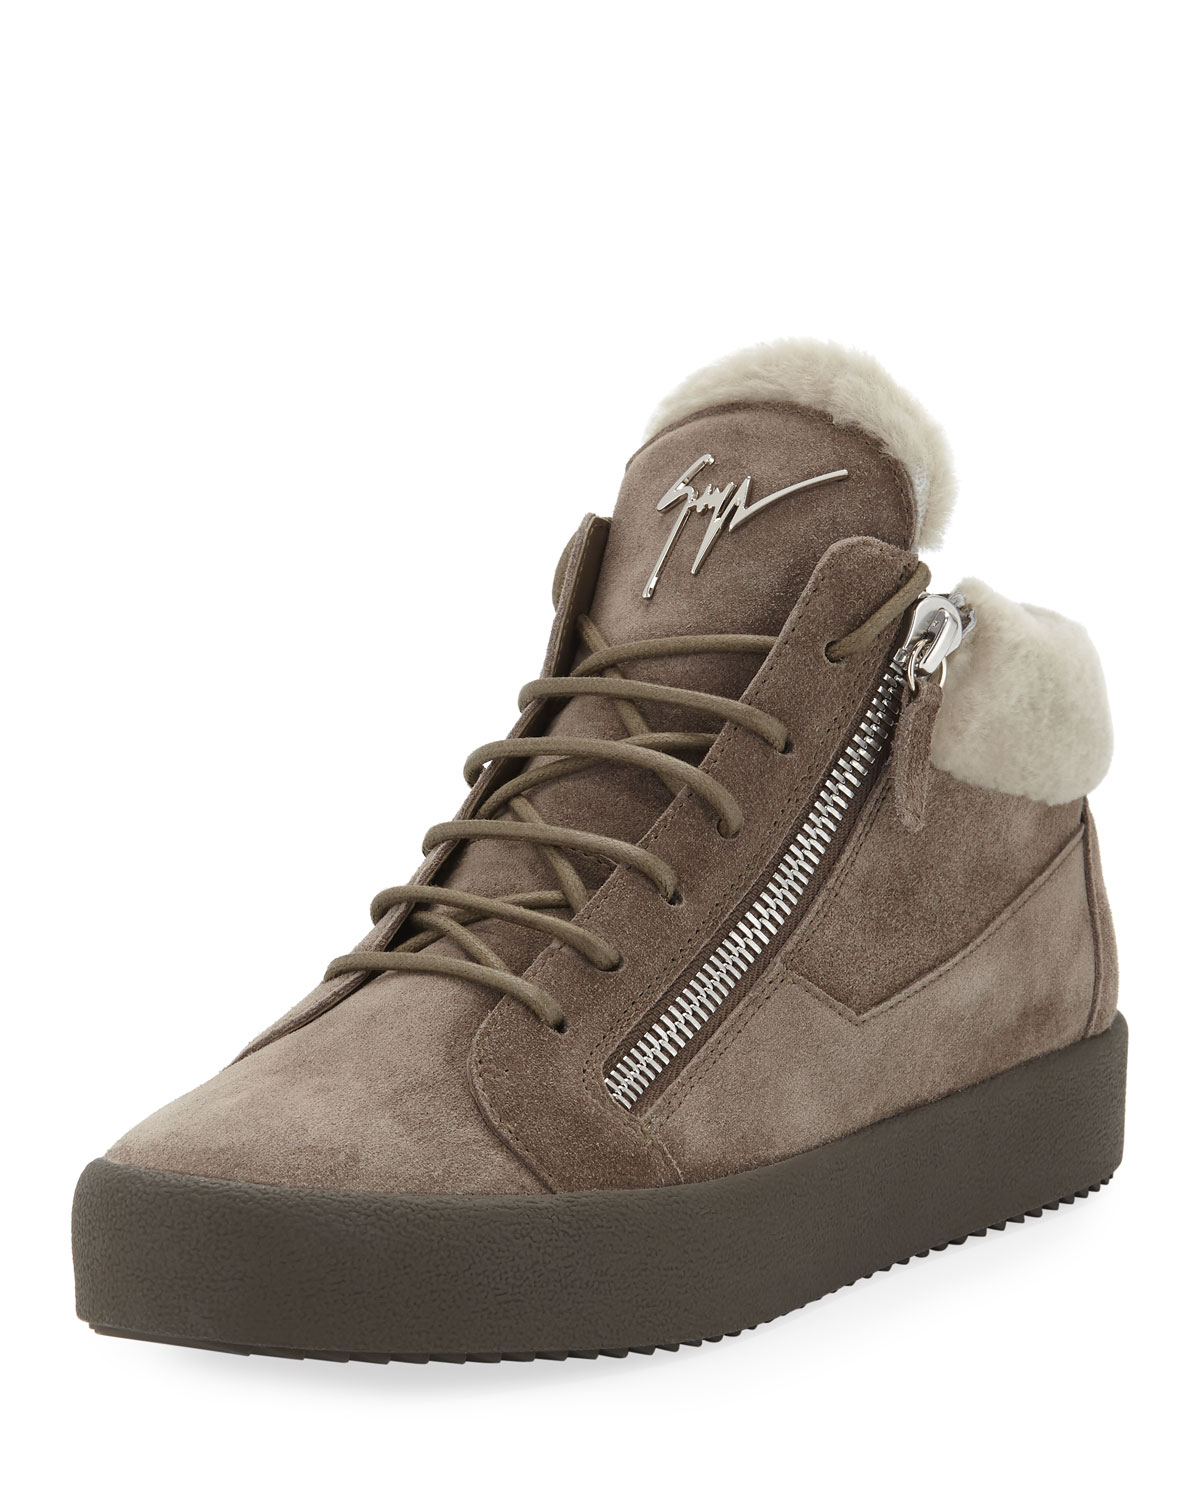 6b4a21fe32a915 Giuseppe Zanotti Men s Shearling-Lined Suede Mid-Top Sneakers ...